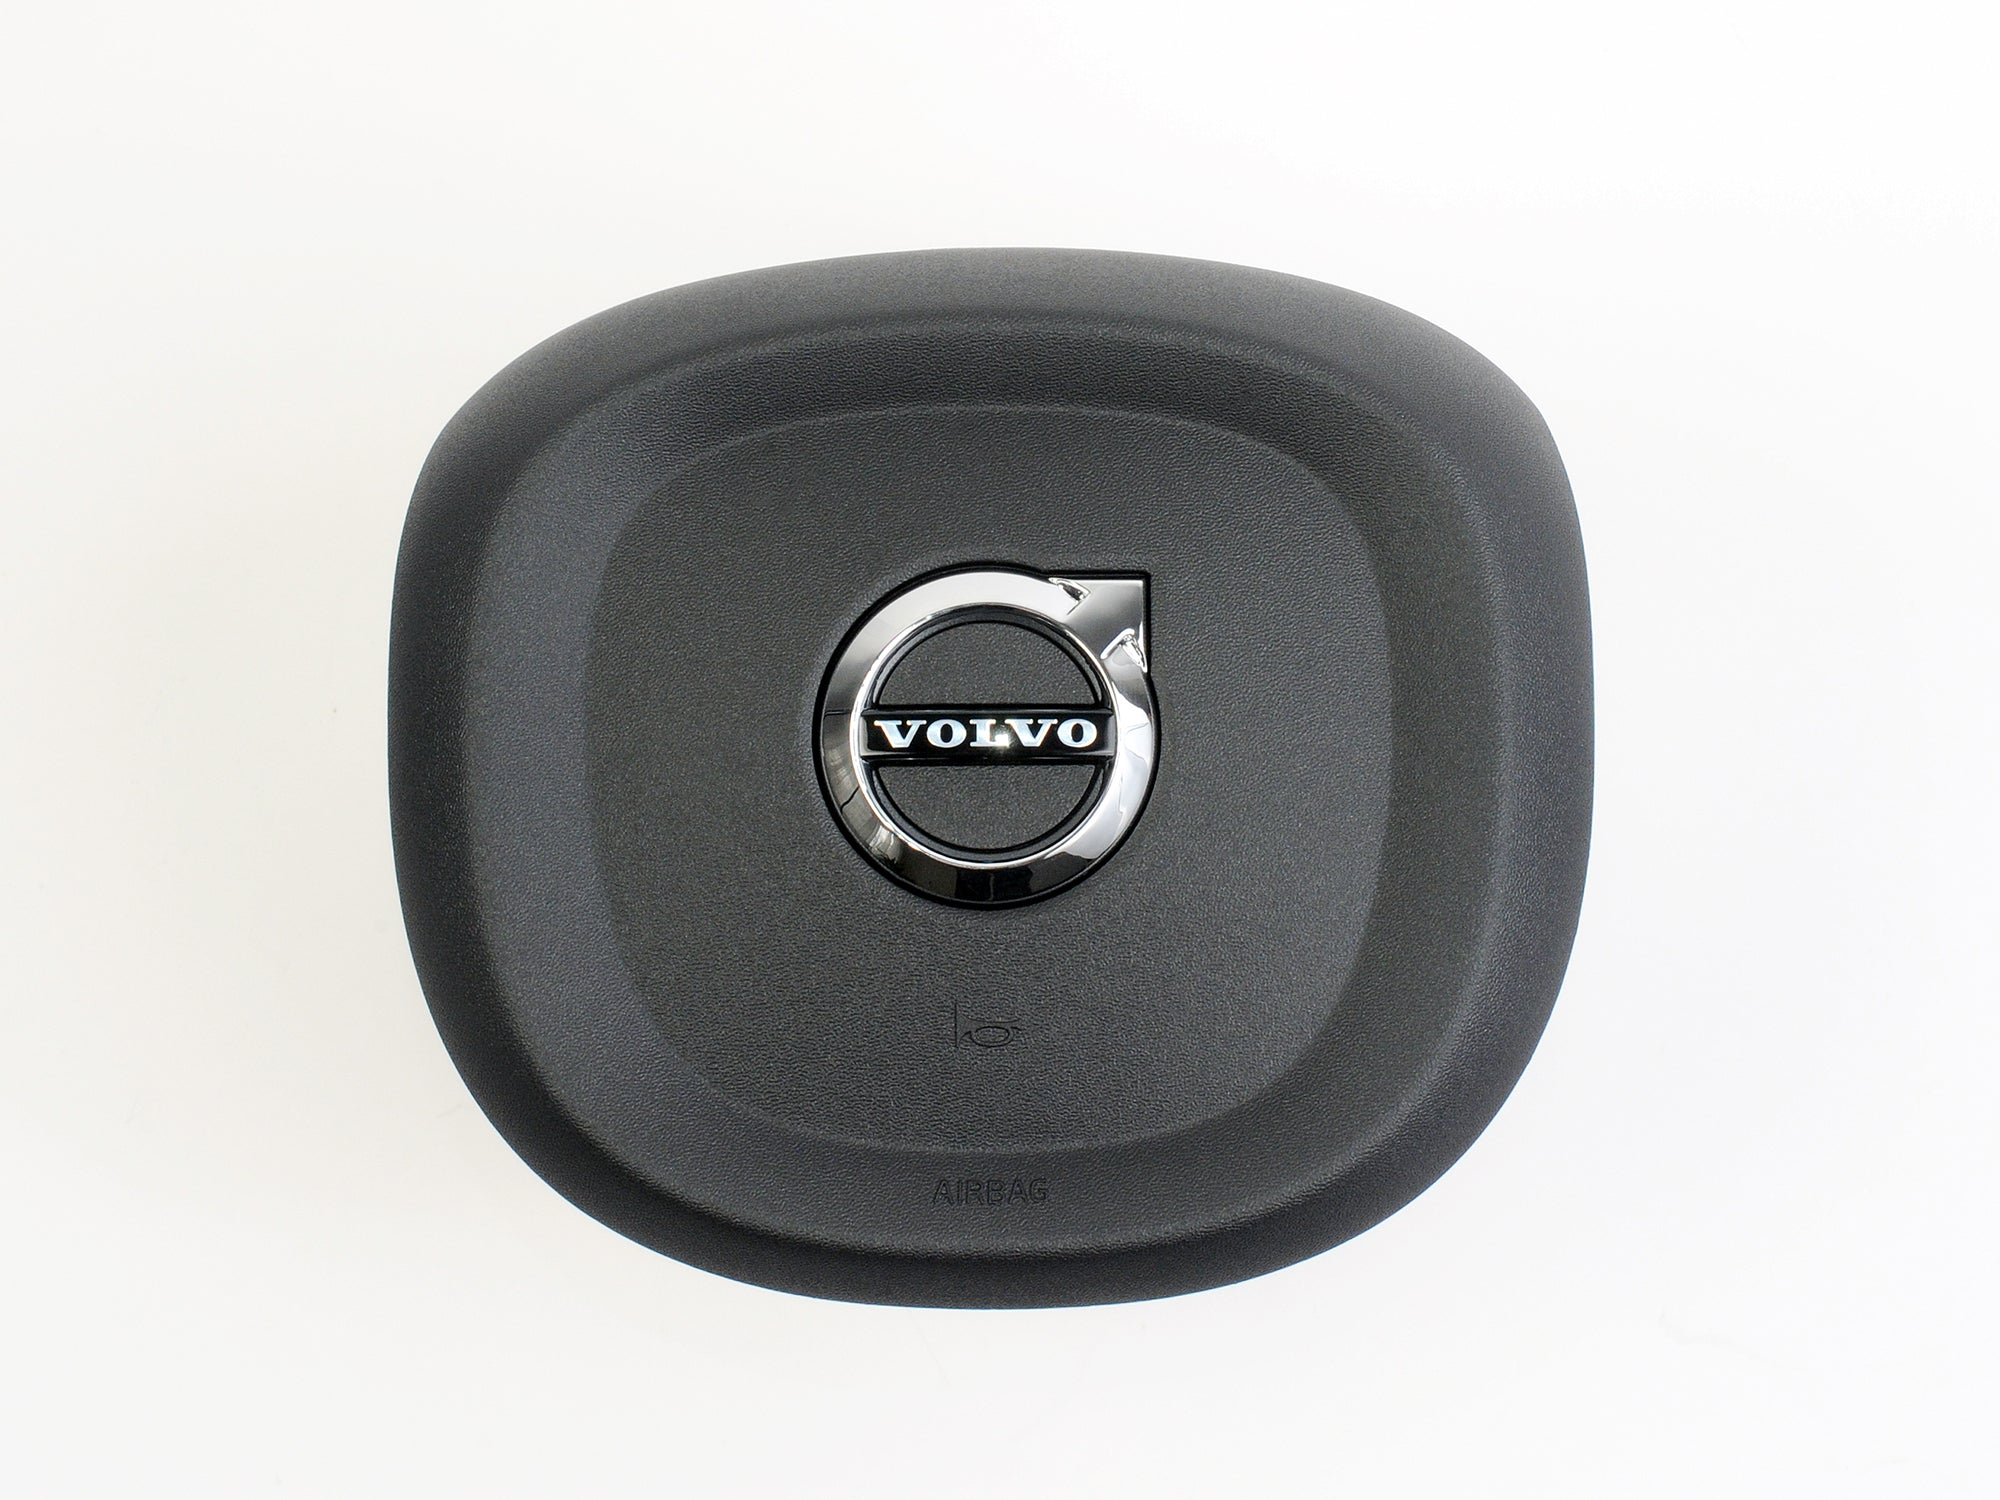 New Volvo XC90 Steering Wheel Airbag | P39825814